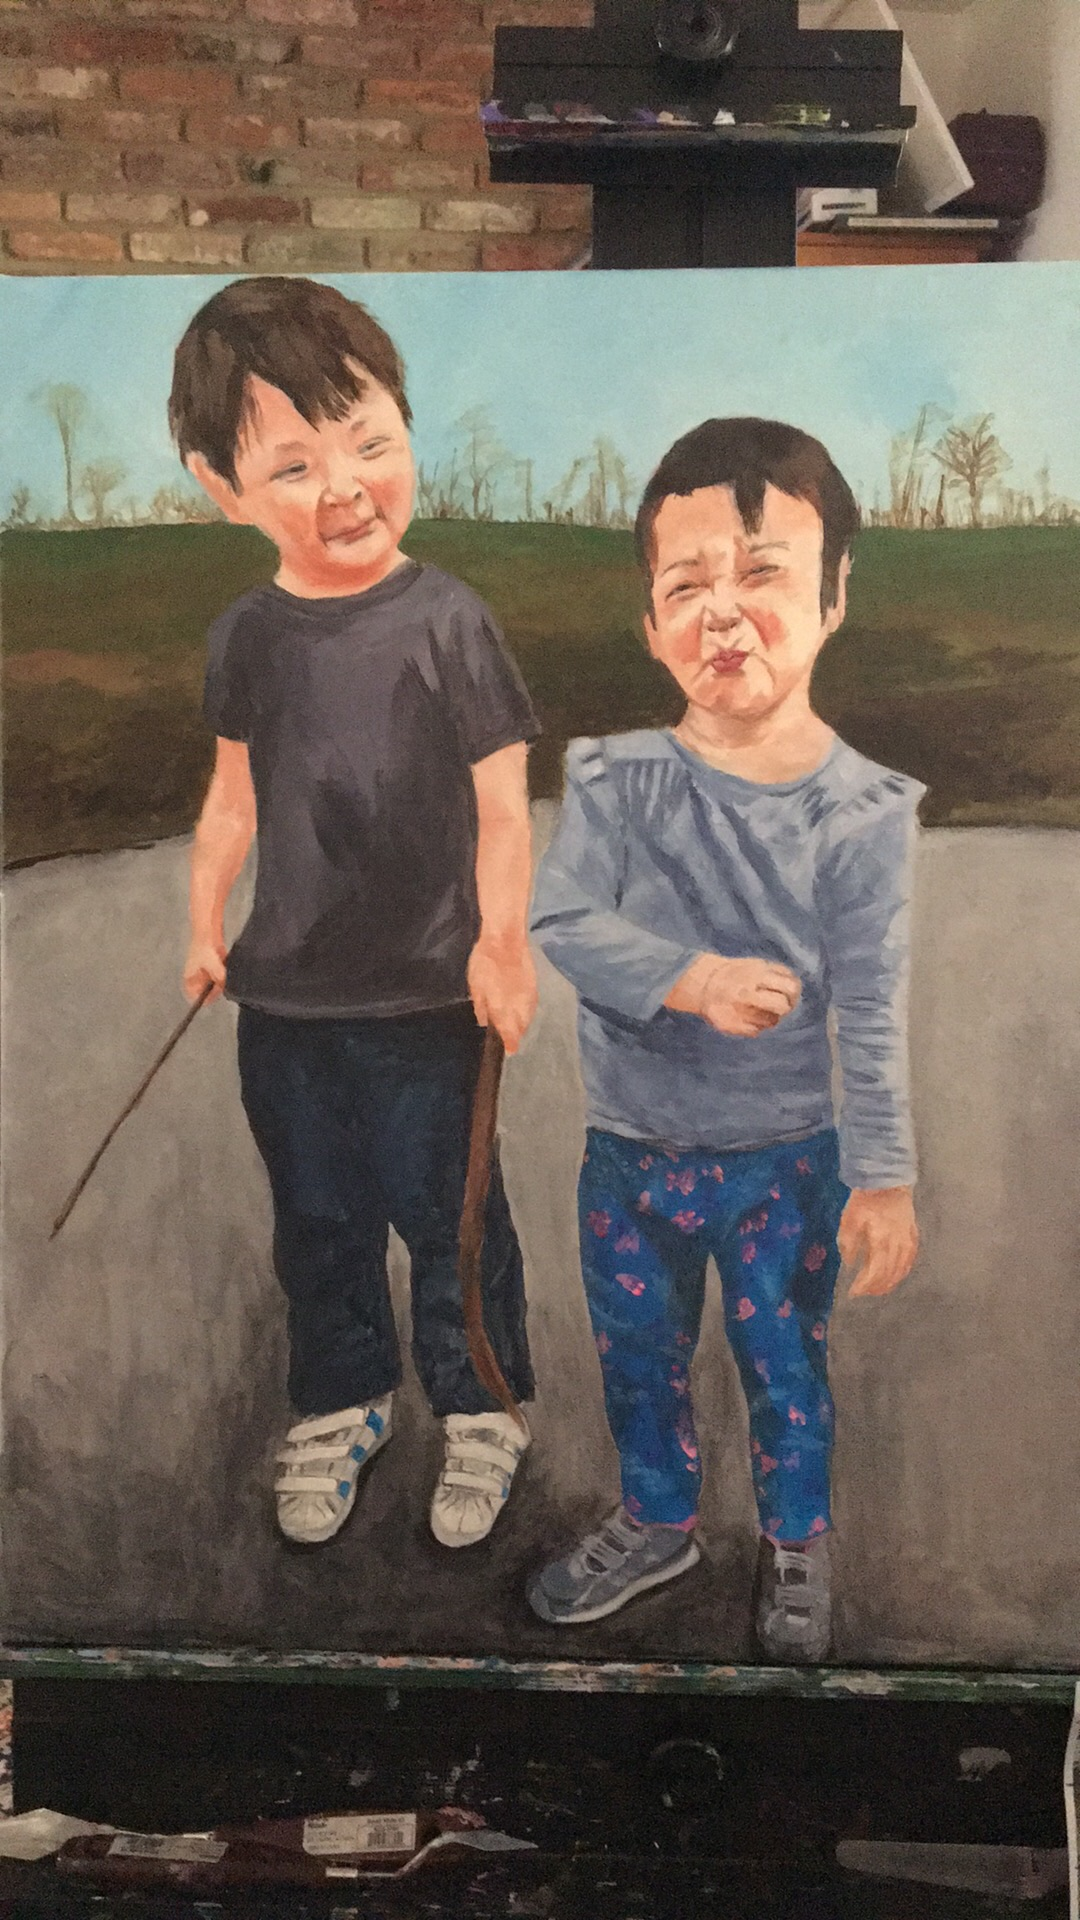 Alex and Kate, 20x16 in.